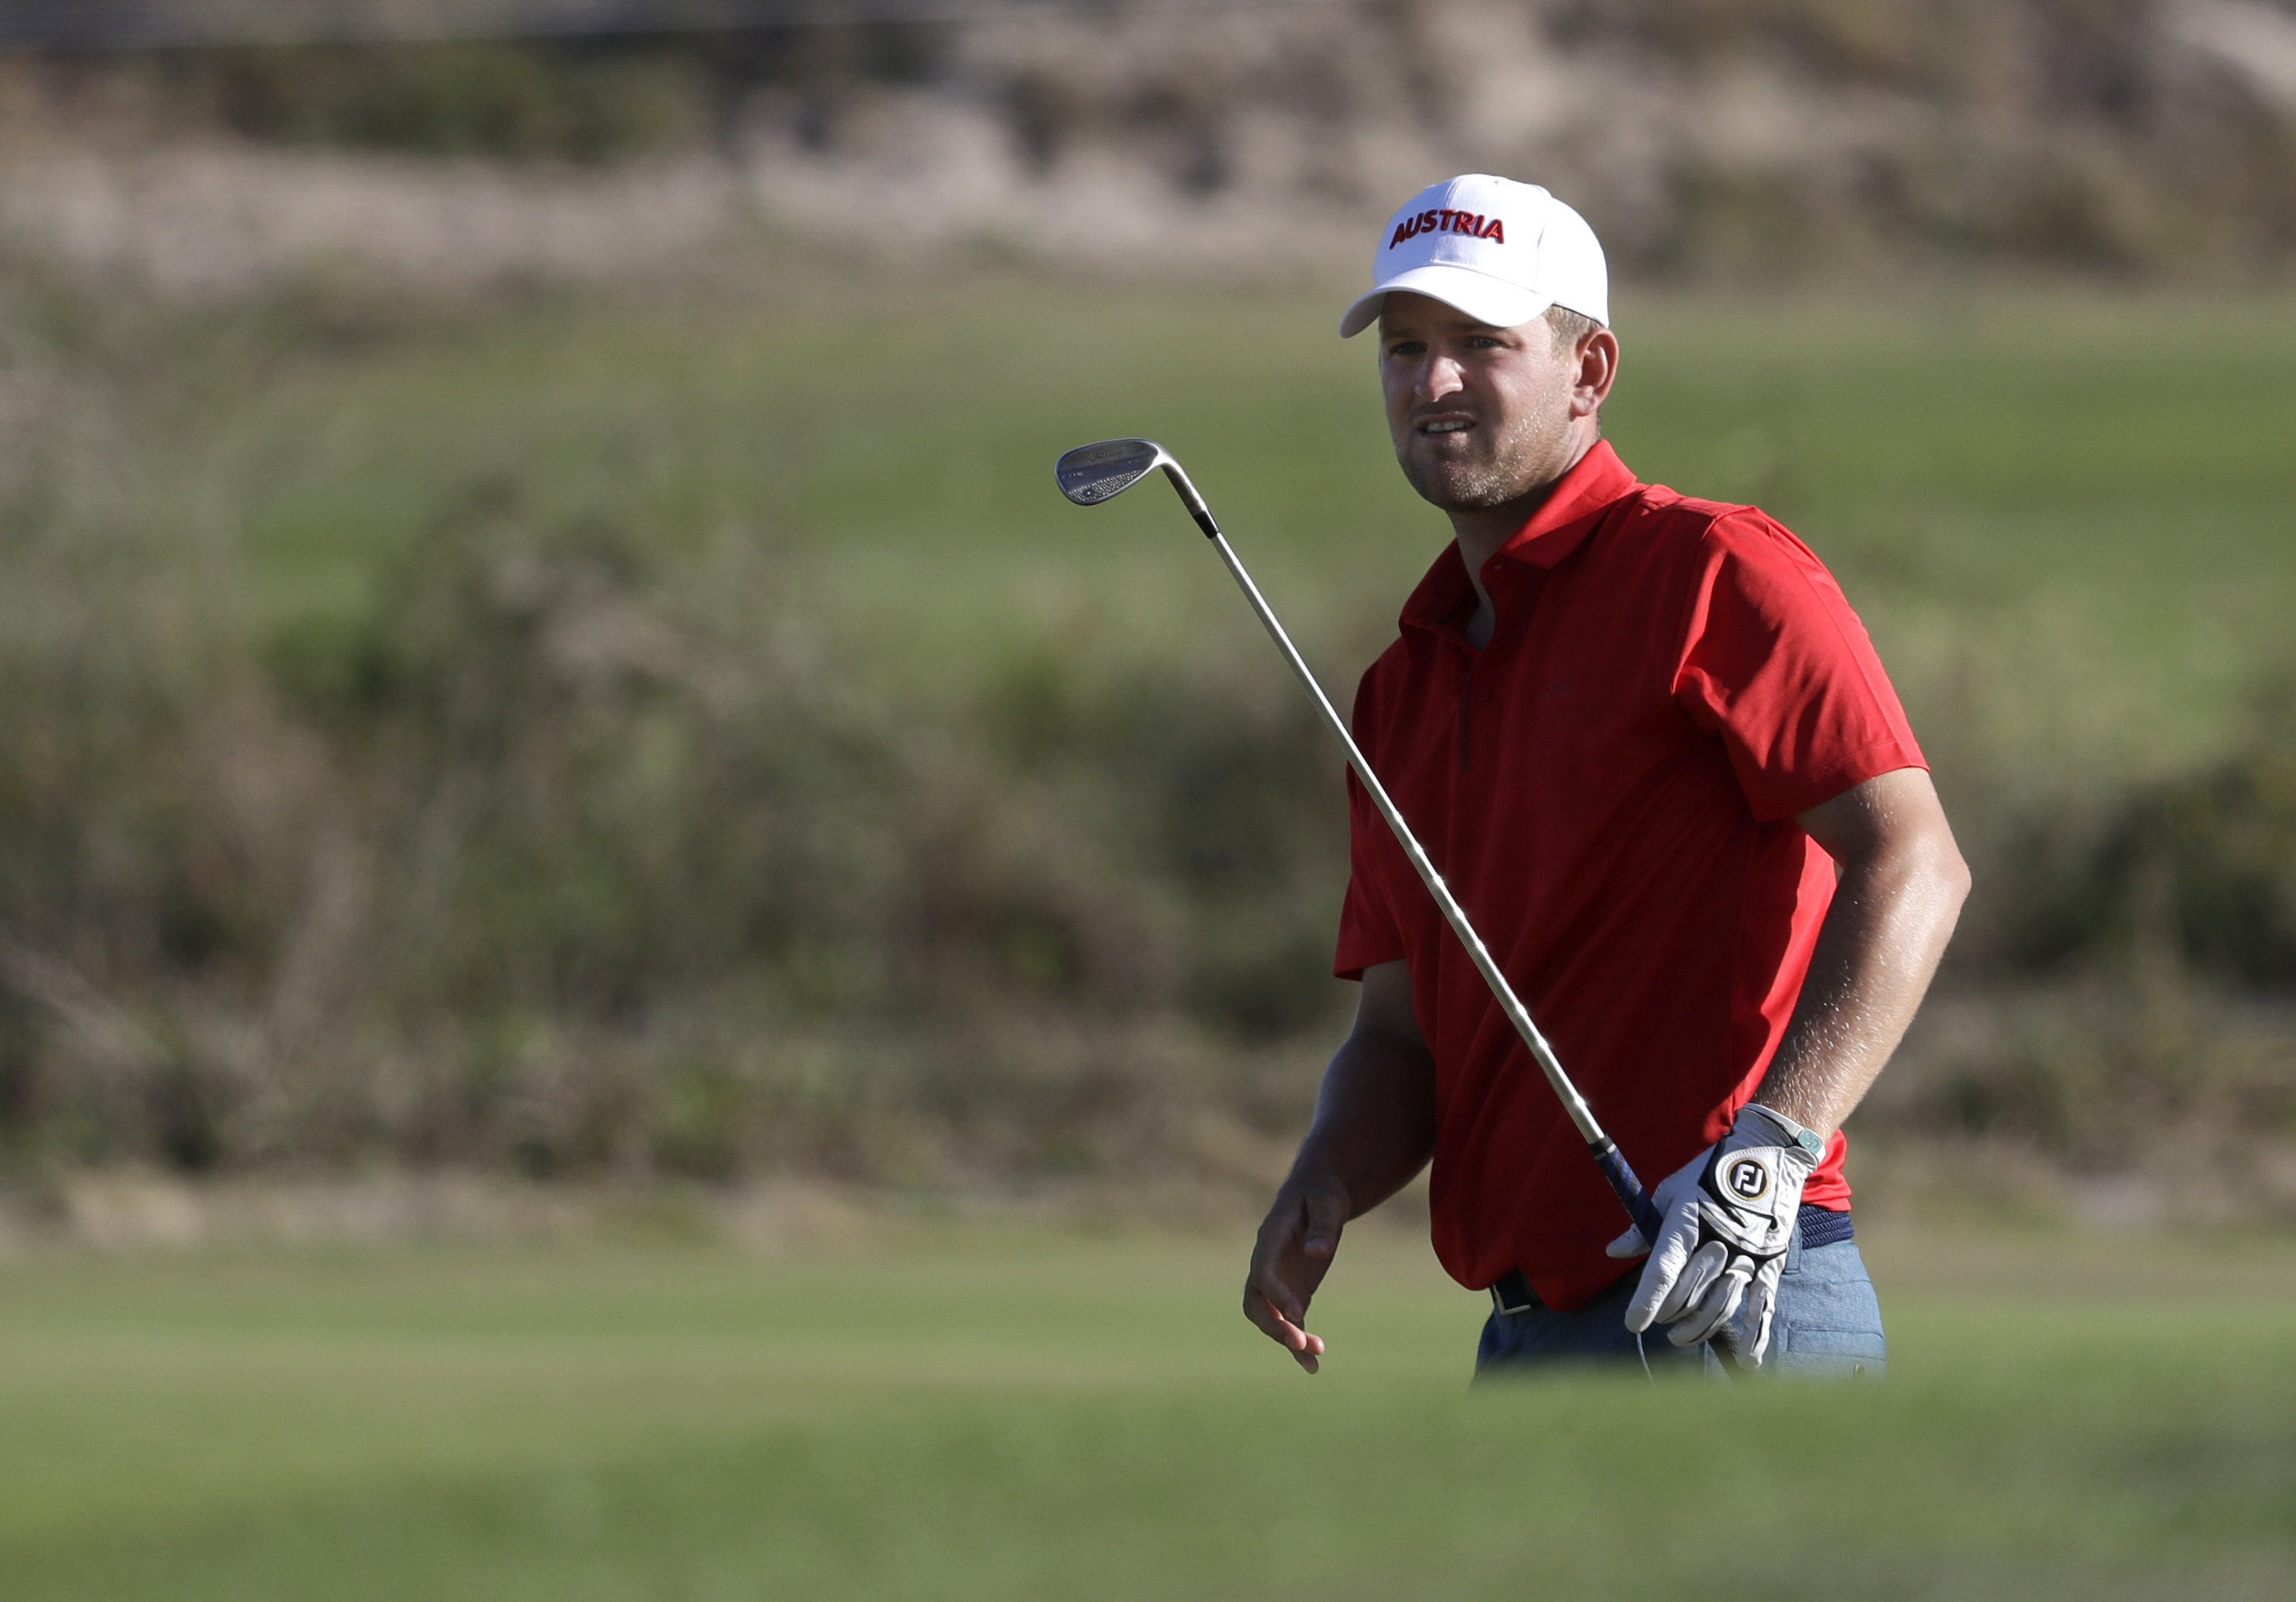 Bernd Wiesberger, of Austria, watches his chip shot to the 18th green during the second round of the men's golf event at the 2016 Summer Olympics in Rio de Janeiro, Brazil, Friday, Aug. 12, 2016. (AP Photo/Alastair Grant)